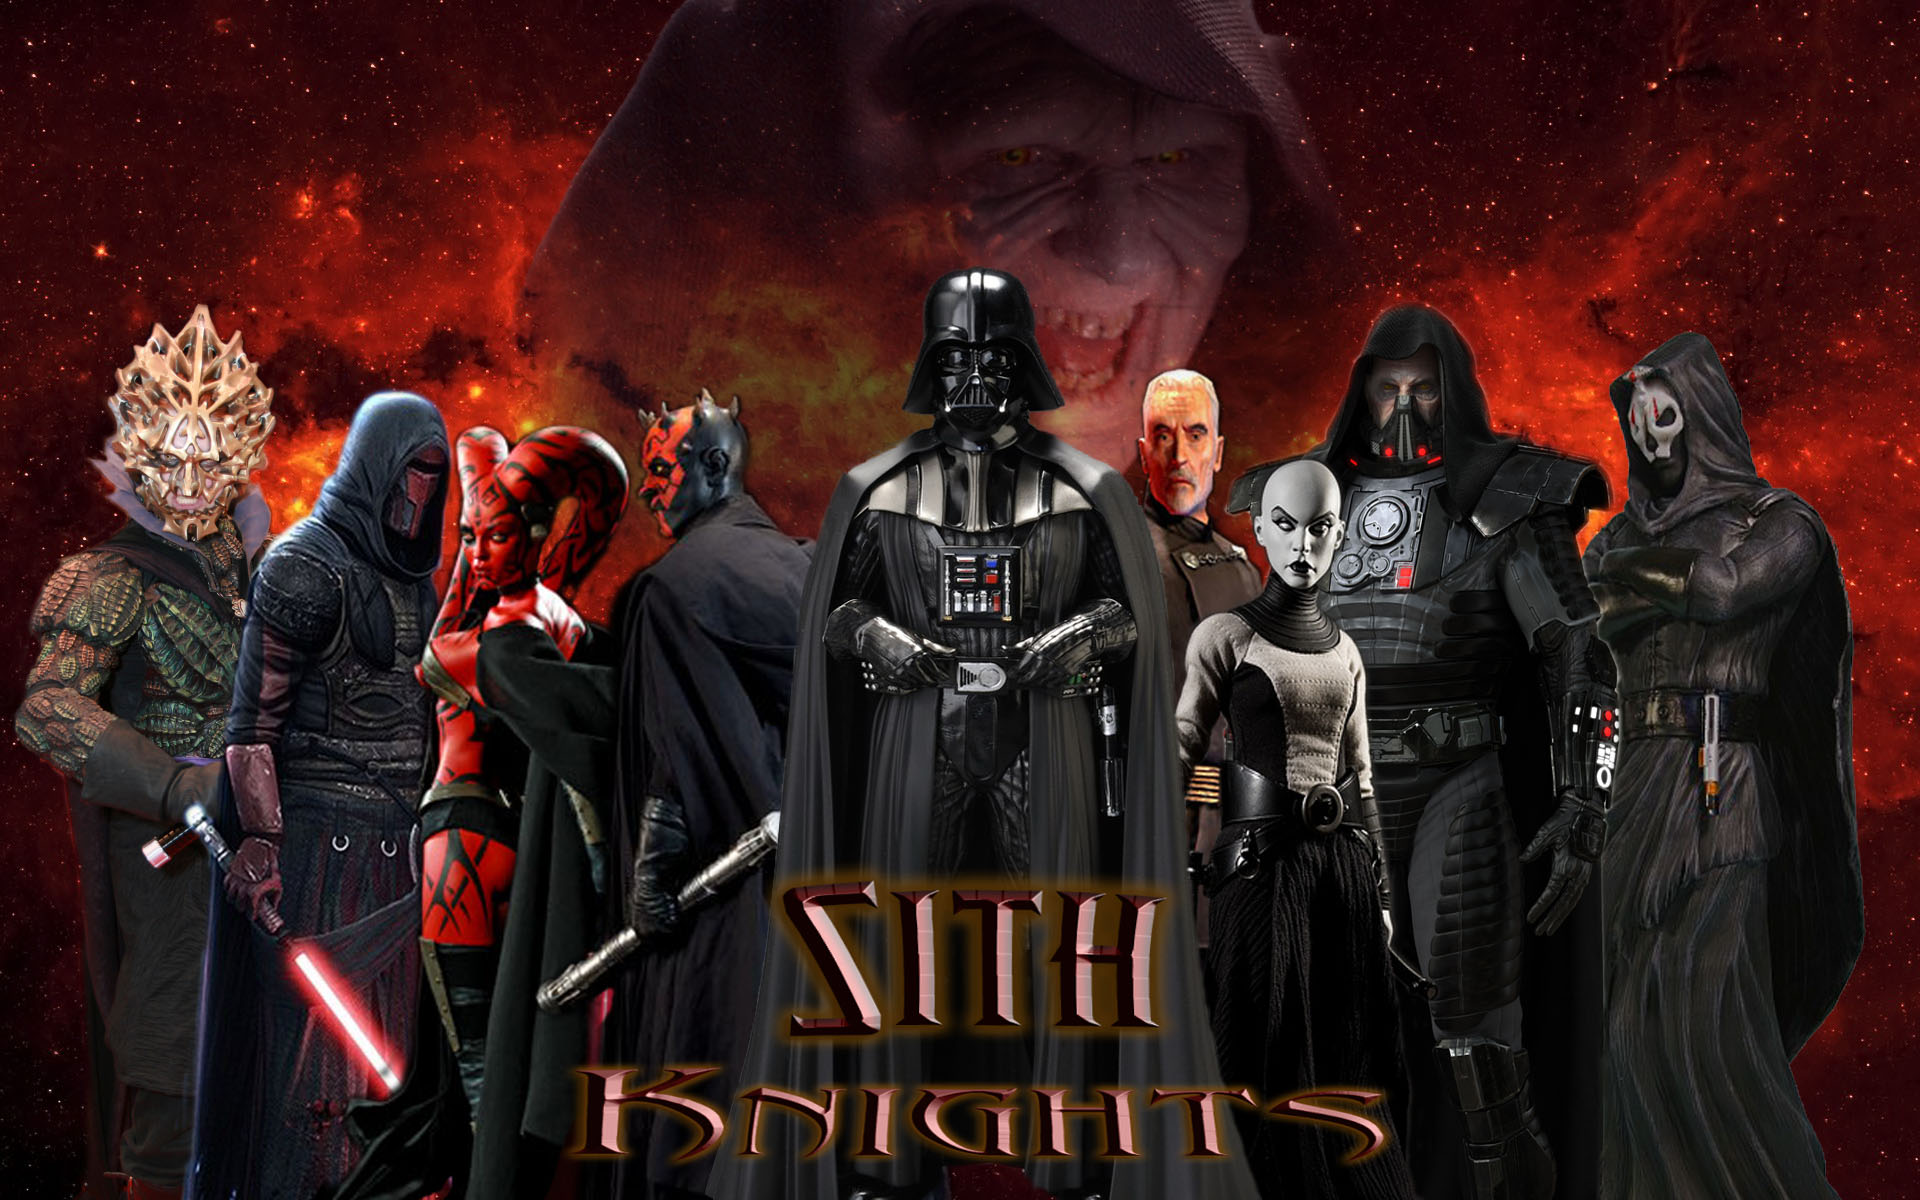 Star Wars Sith Lords Wallpaper - WallpaperSafari